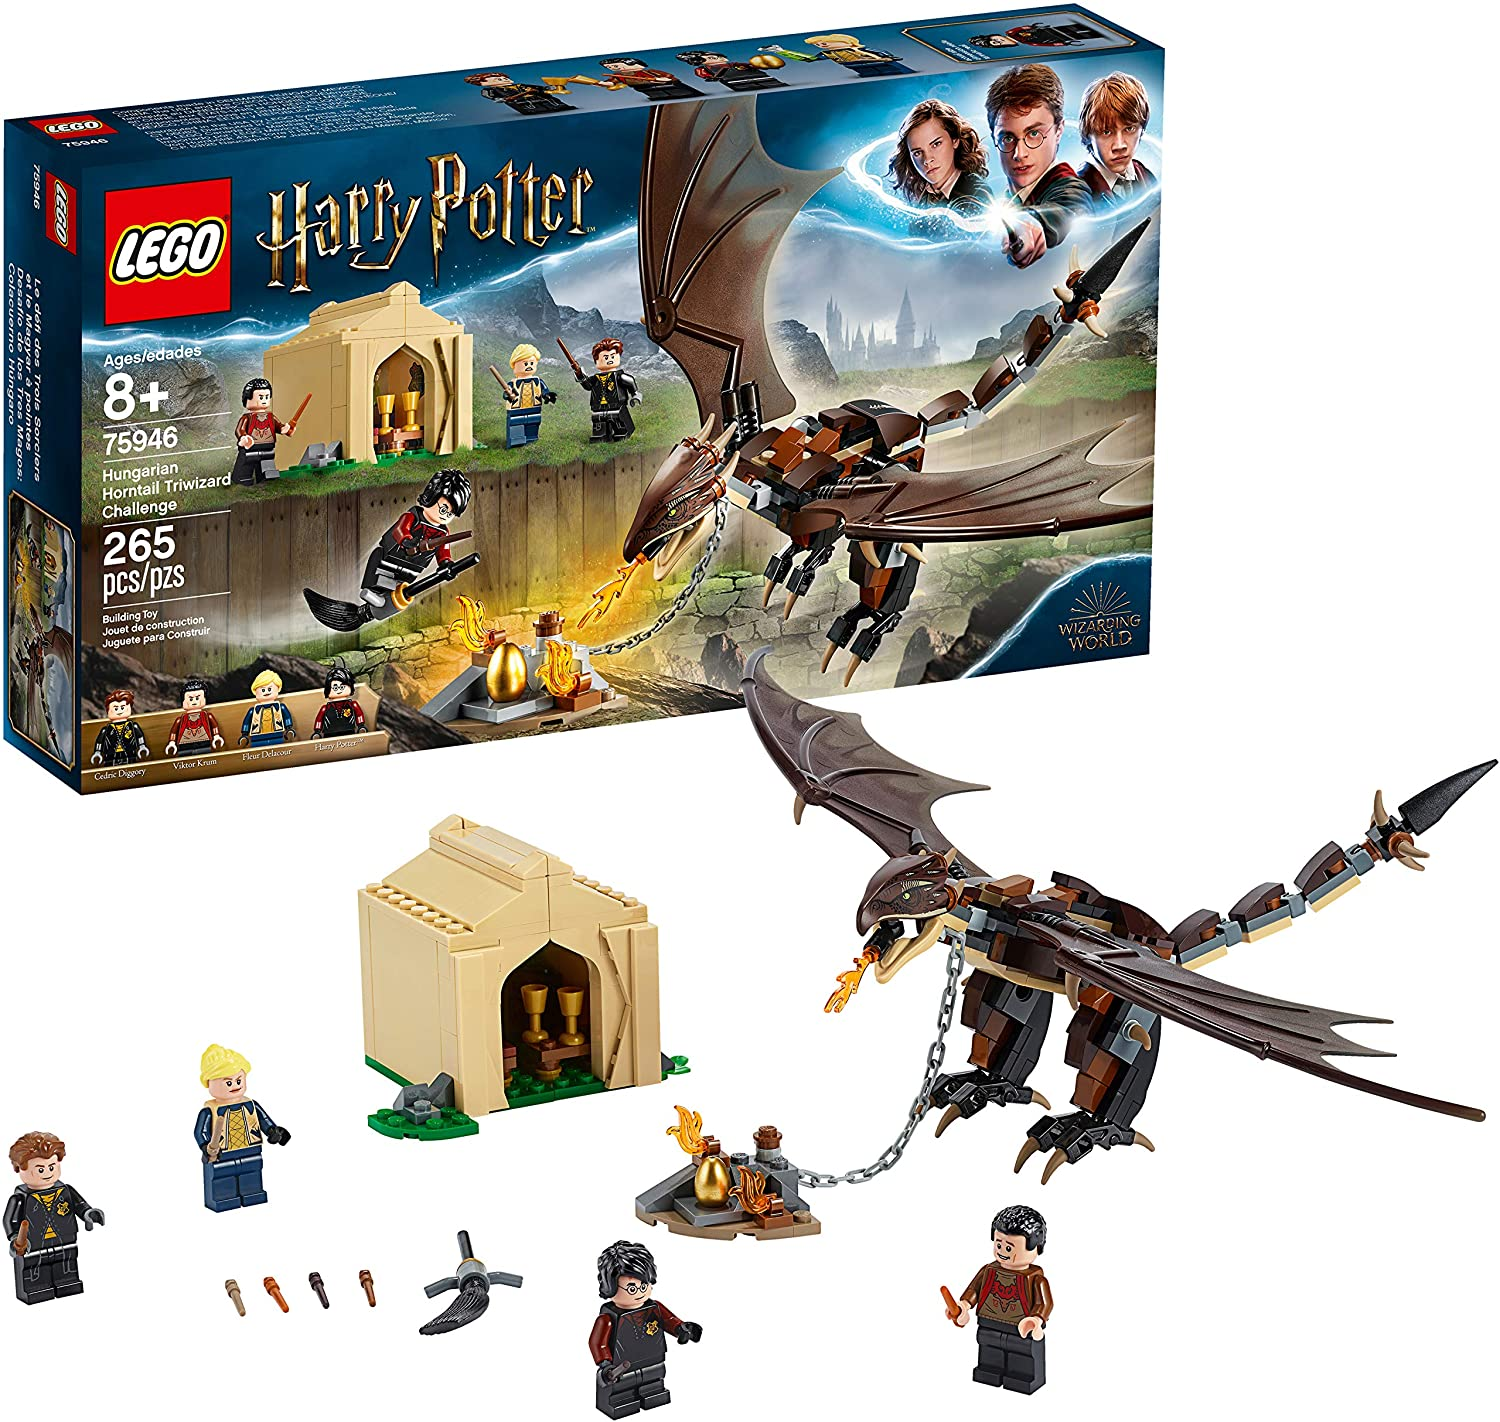 Lego Harry Potter And The Goblet Of Fire Hungarian Horntail Triwizard Challenge 75946 Building Kit New 2019 265 Pieces